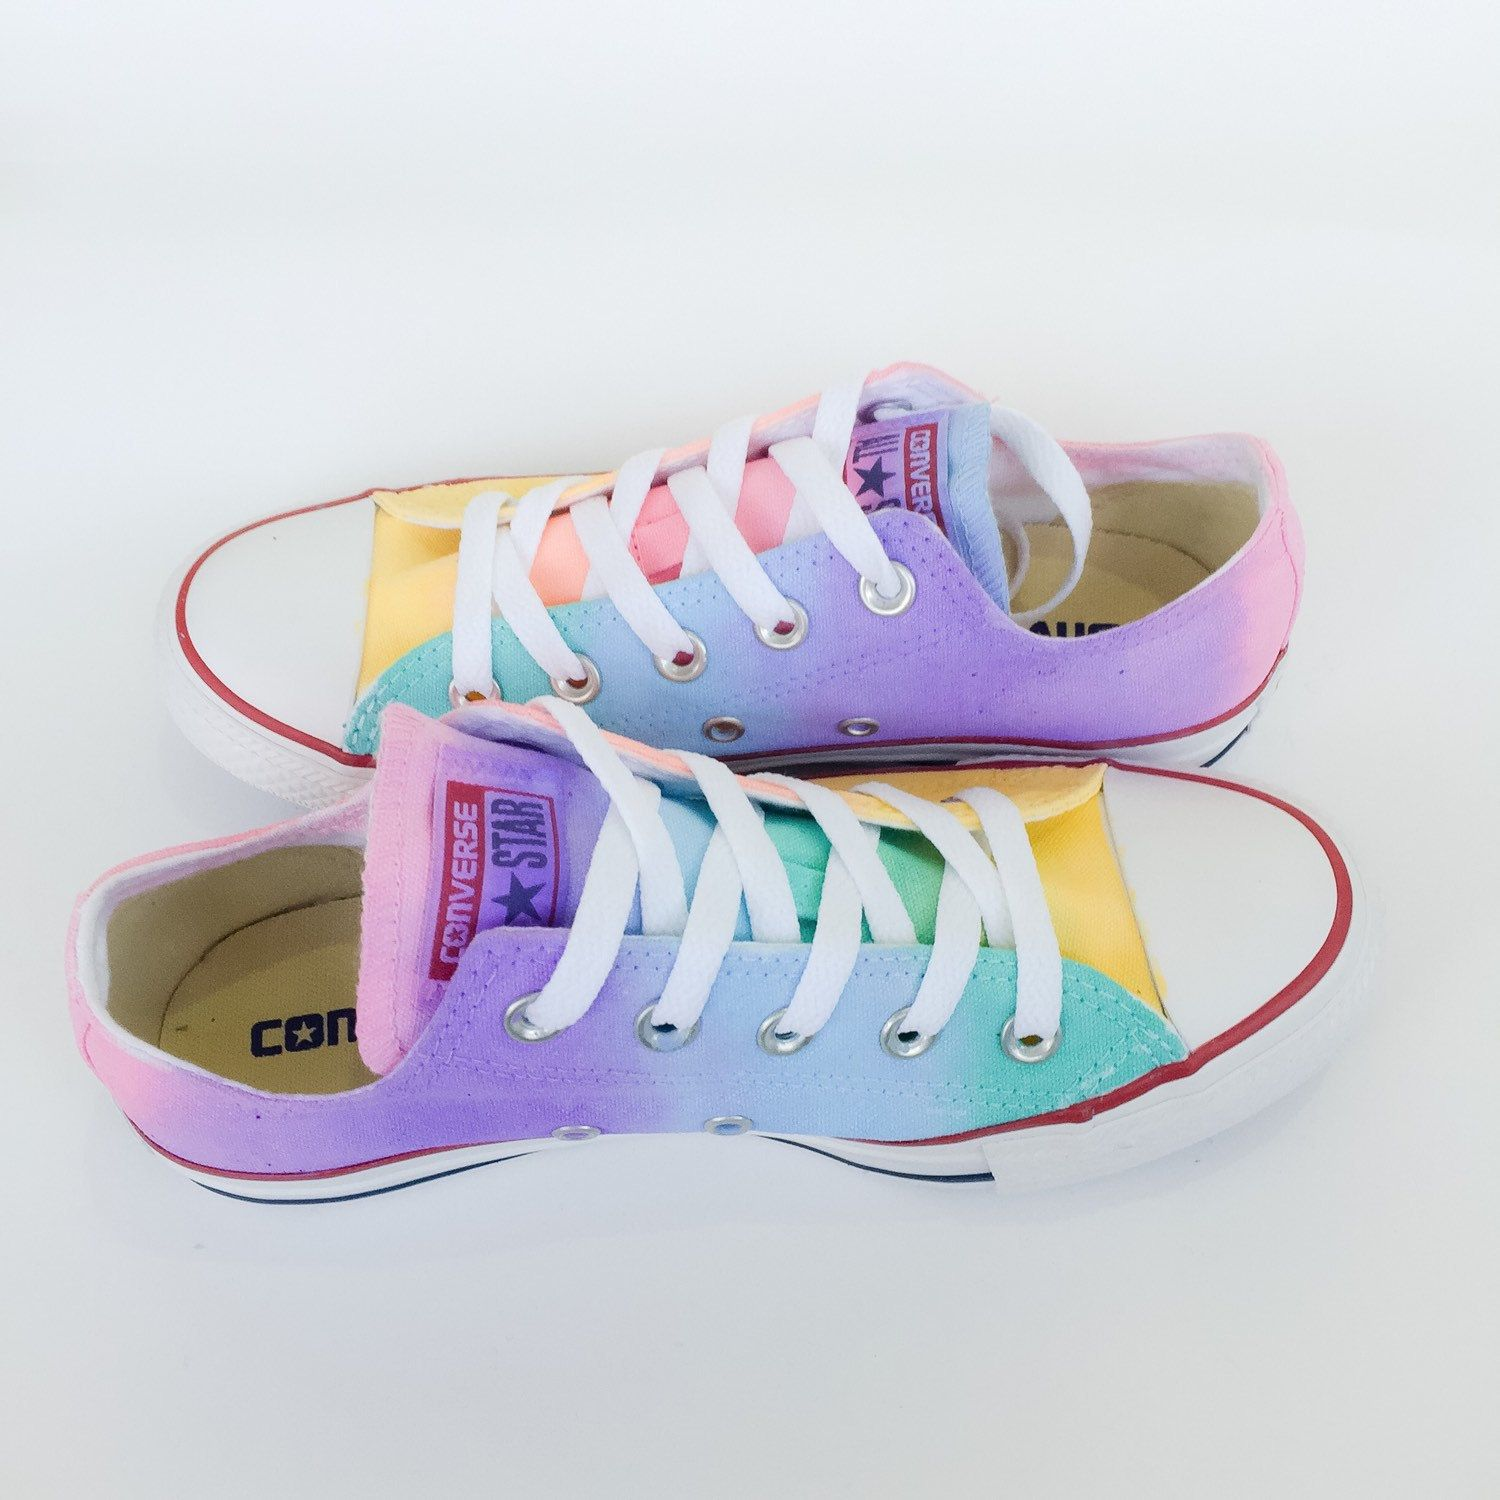 09c7e8f08143 The softer side of the rainbow is here in the pastel tie dyed low top  Converse! A unique hand painted pastel rainbow tie dye ombré color blend